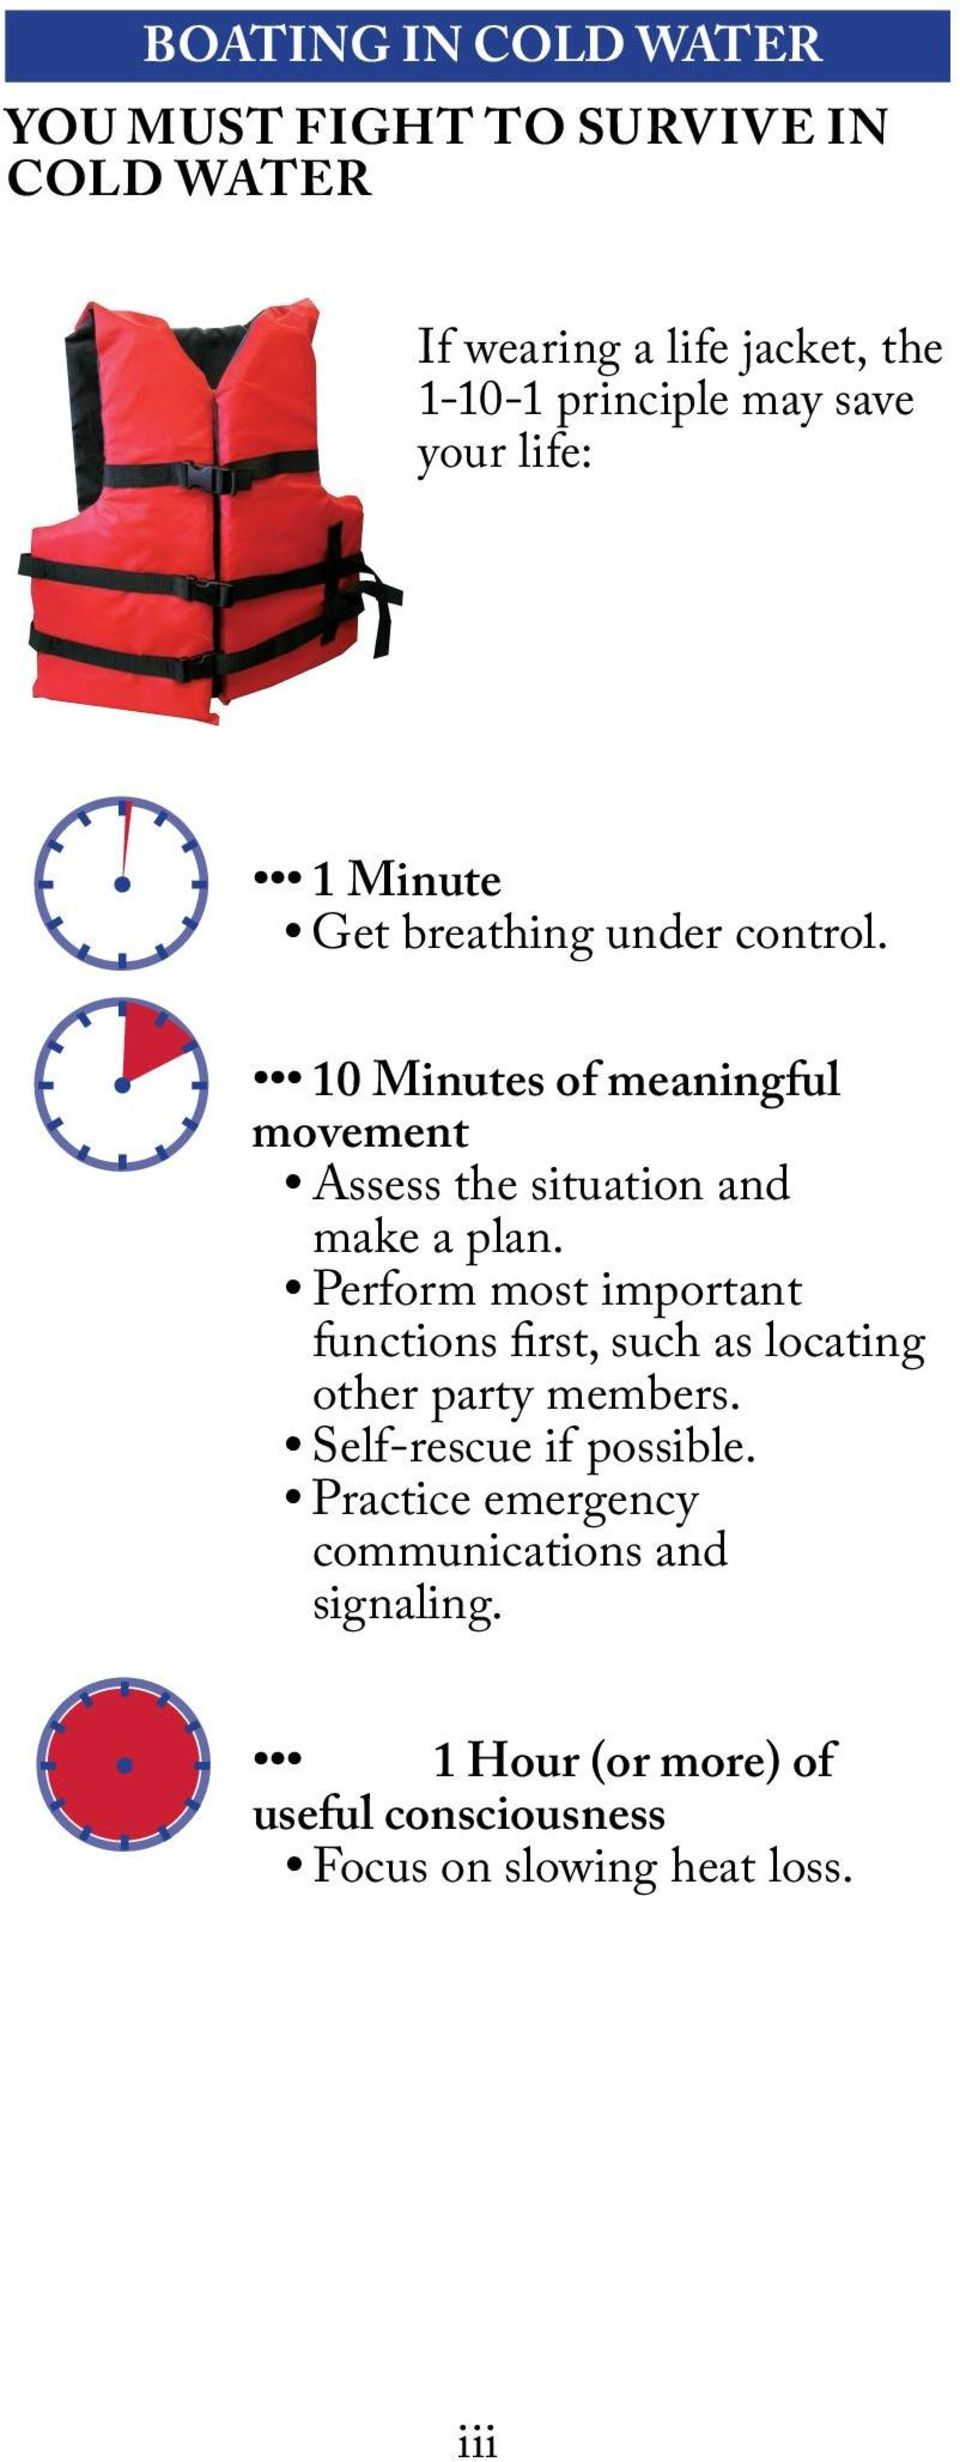 10 Minutes of meaningful movement Assess the situation and make a plan.